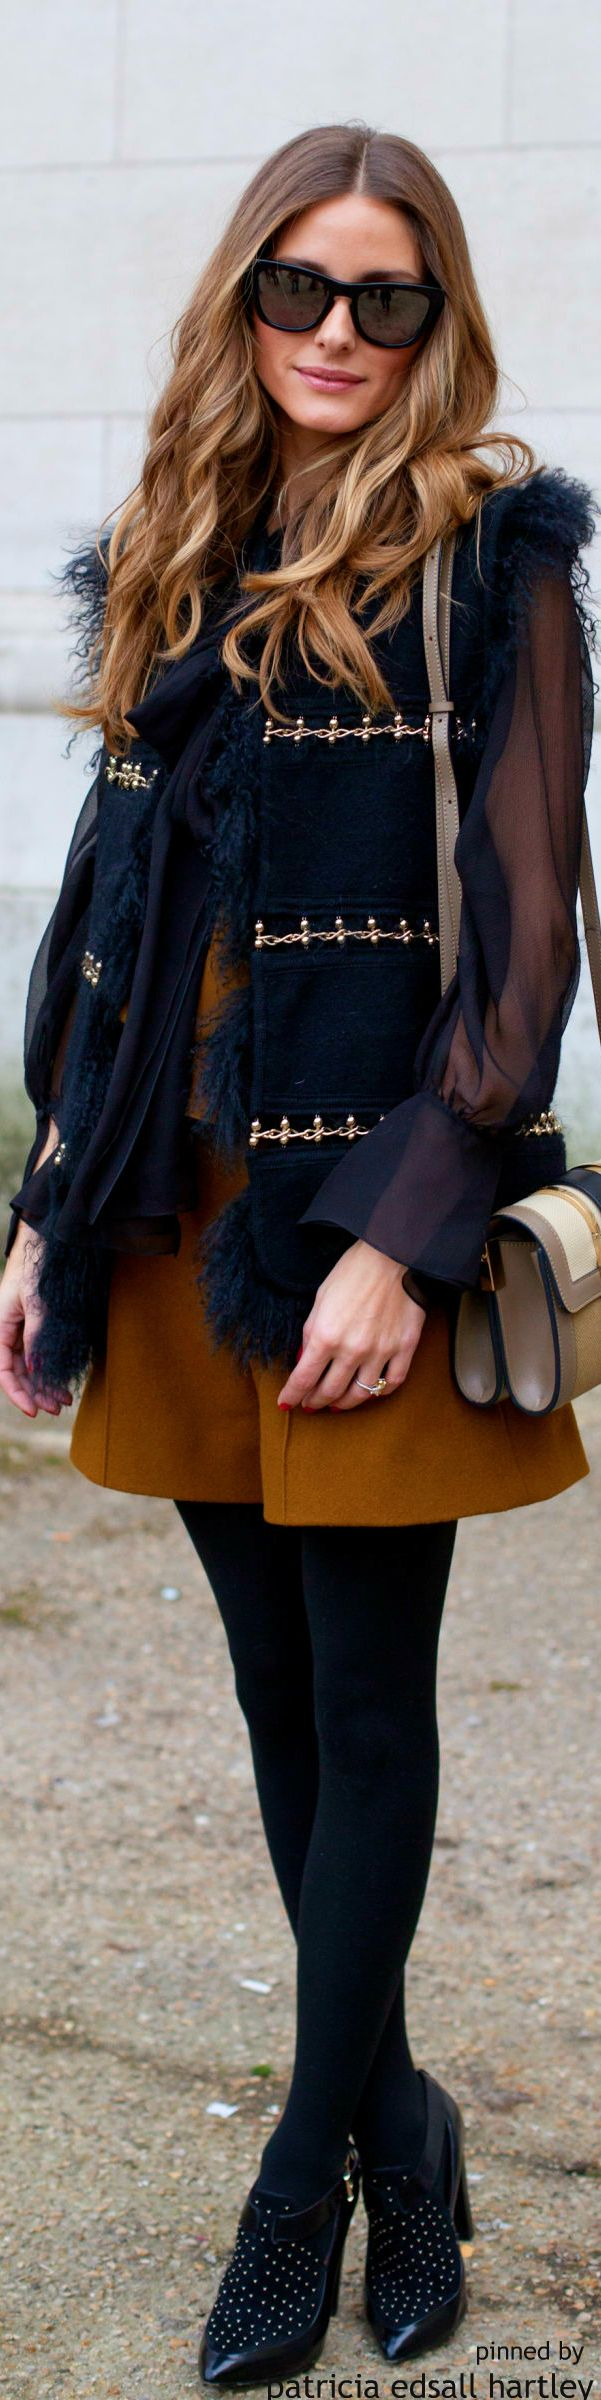 She really is a master at layering textures and fabrics to perfection. The mustard skirt breaks up the column of black for a look that is anything other than boring.